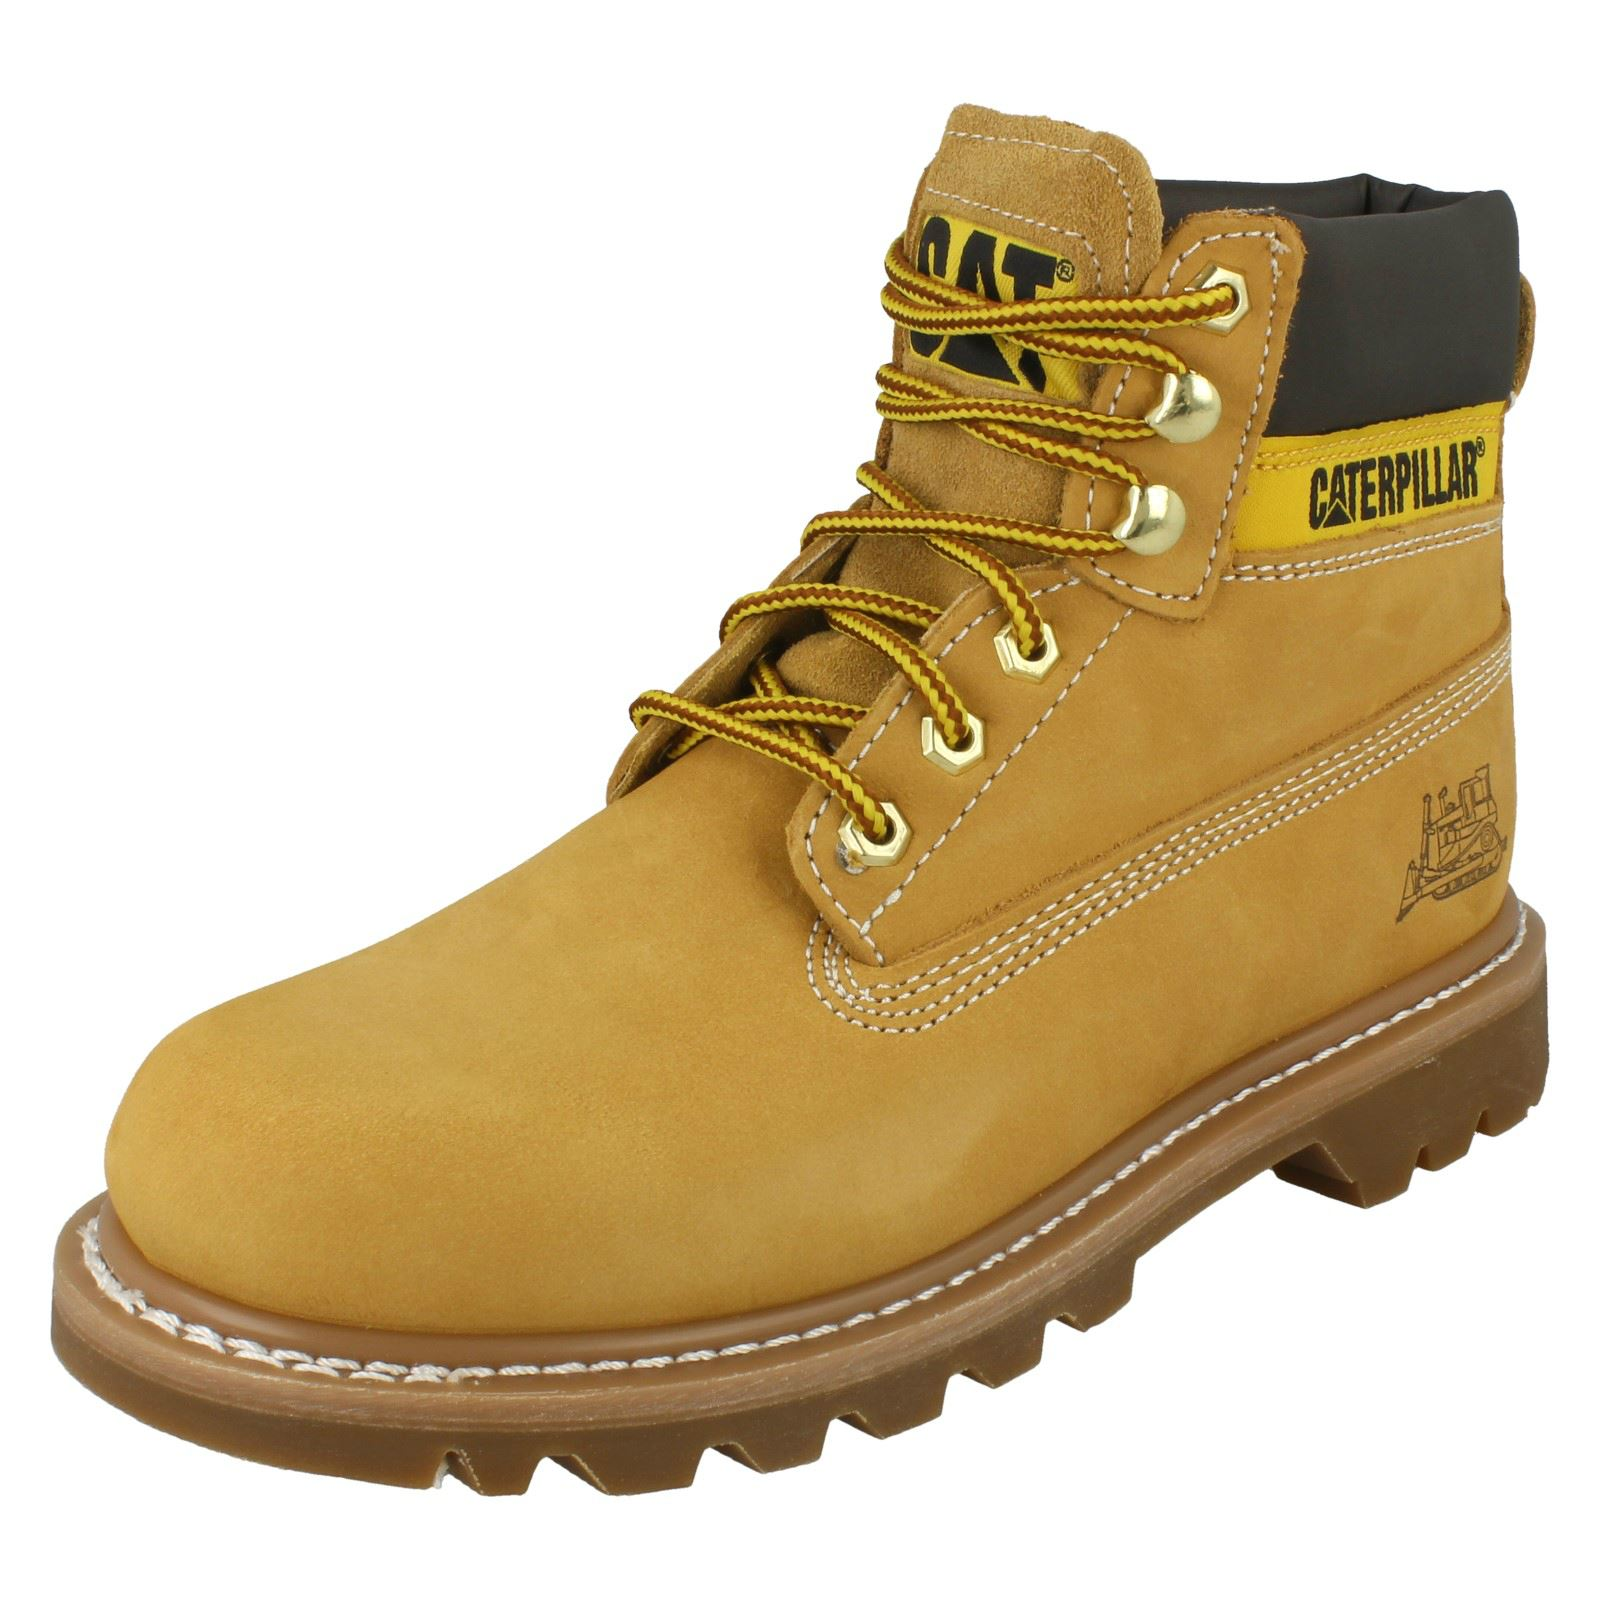 Billig Colorado hohe Qualität Mens Caterpillar Colorado Billig Boots 8fc1d0